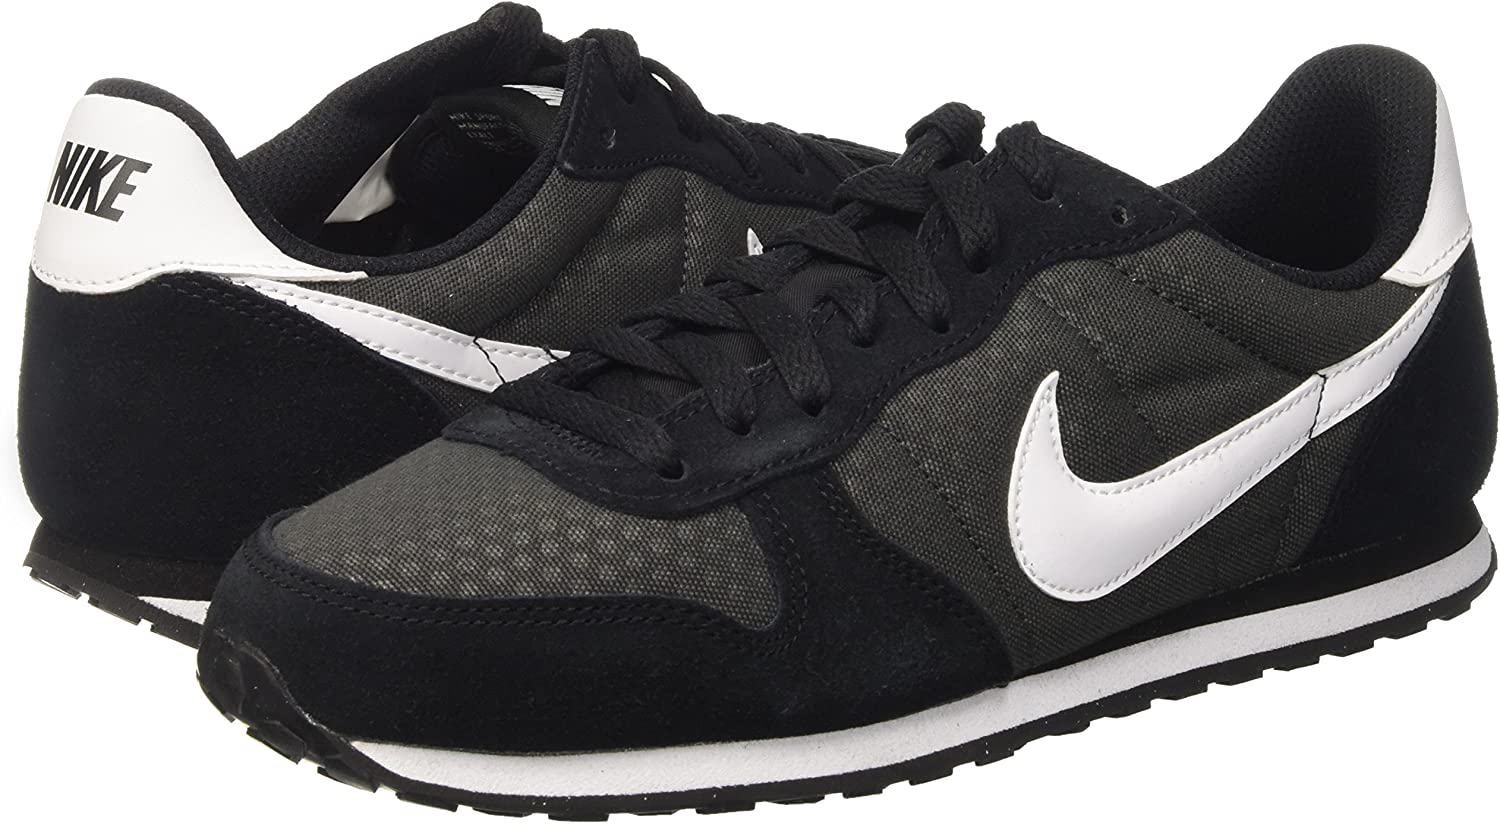 Circular acampar Soledad  Nike Genicco, Women's Running Shoes, Black (Black/White-Anthracite 012), 7  UK (41 EU): Amazon.co.uk: Shoes & Bags